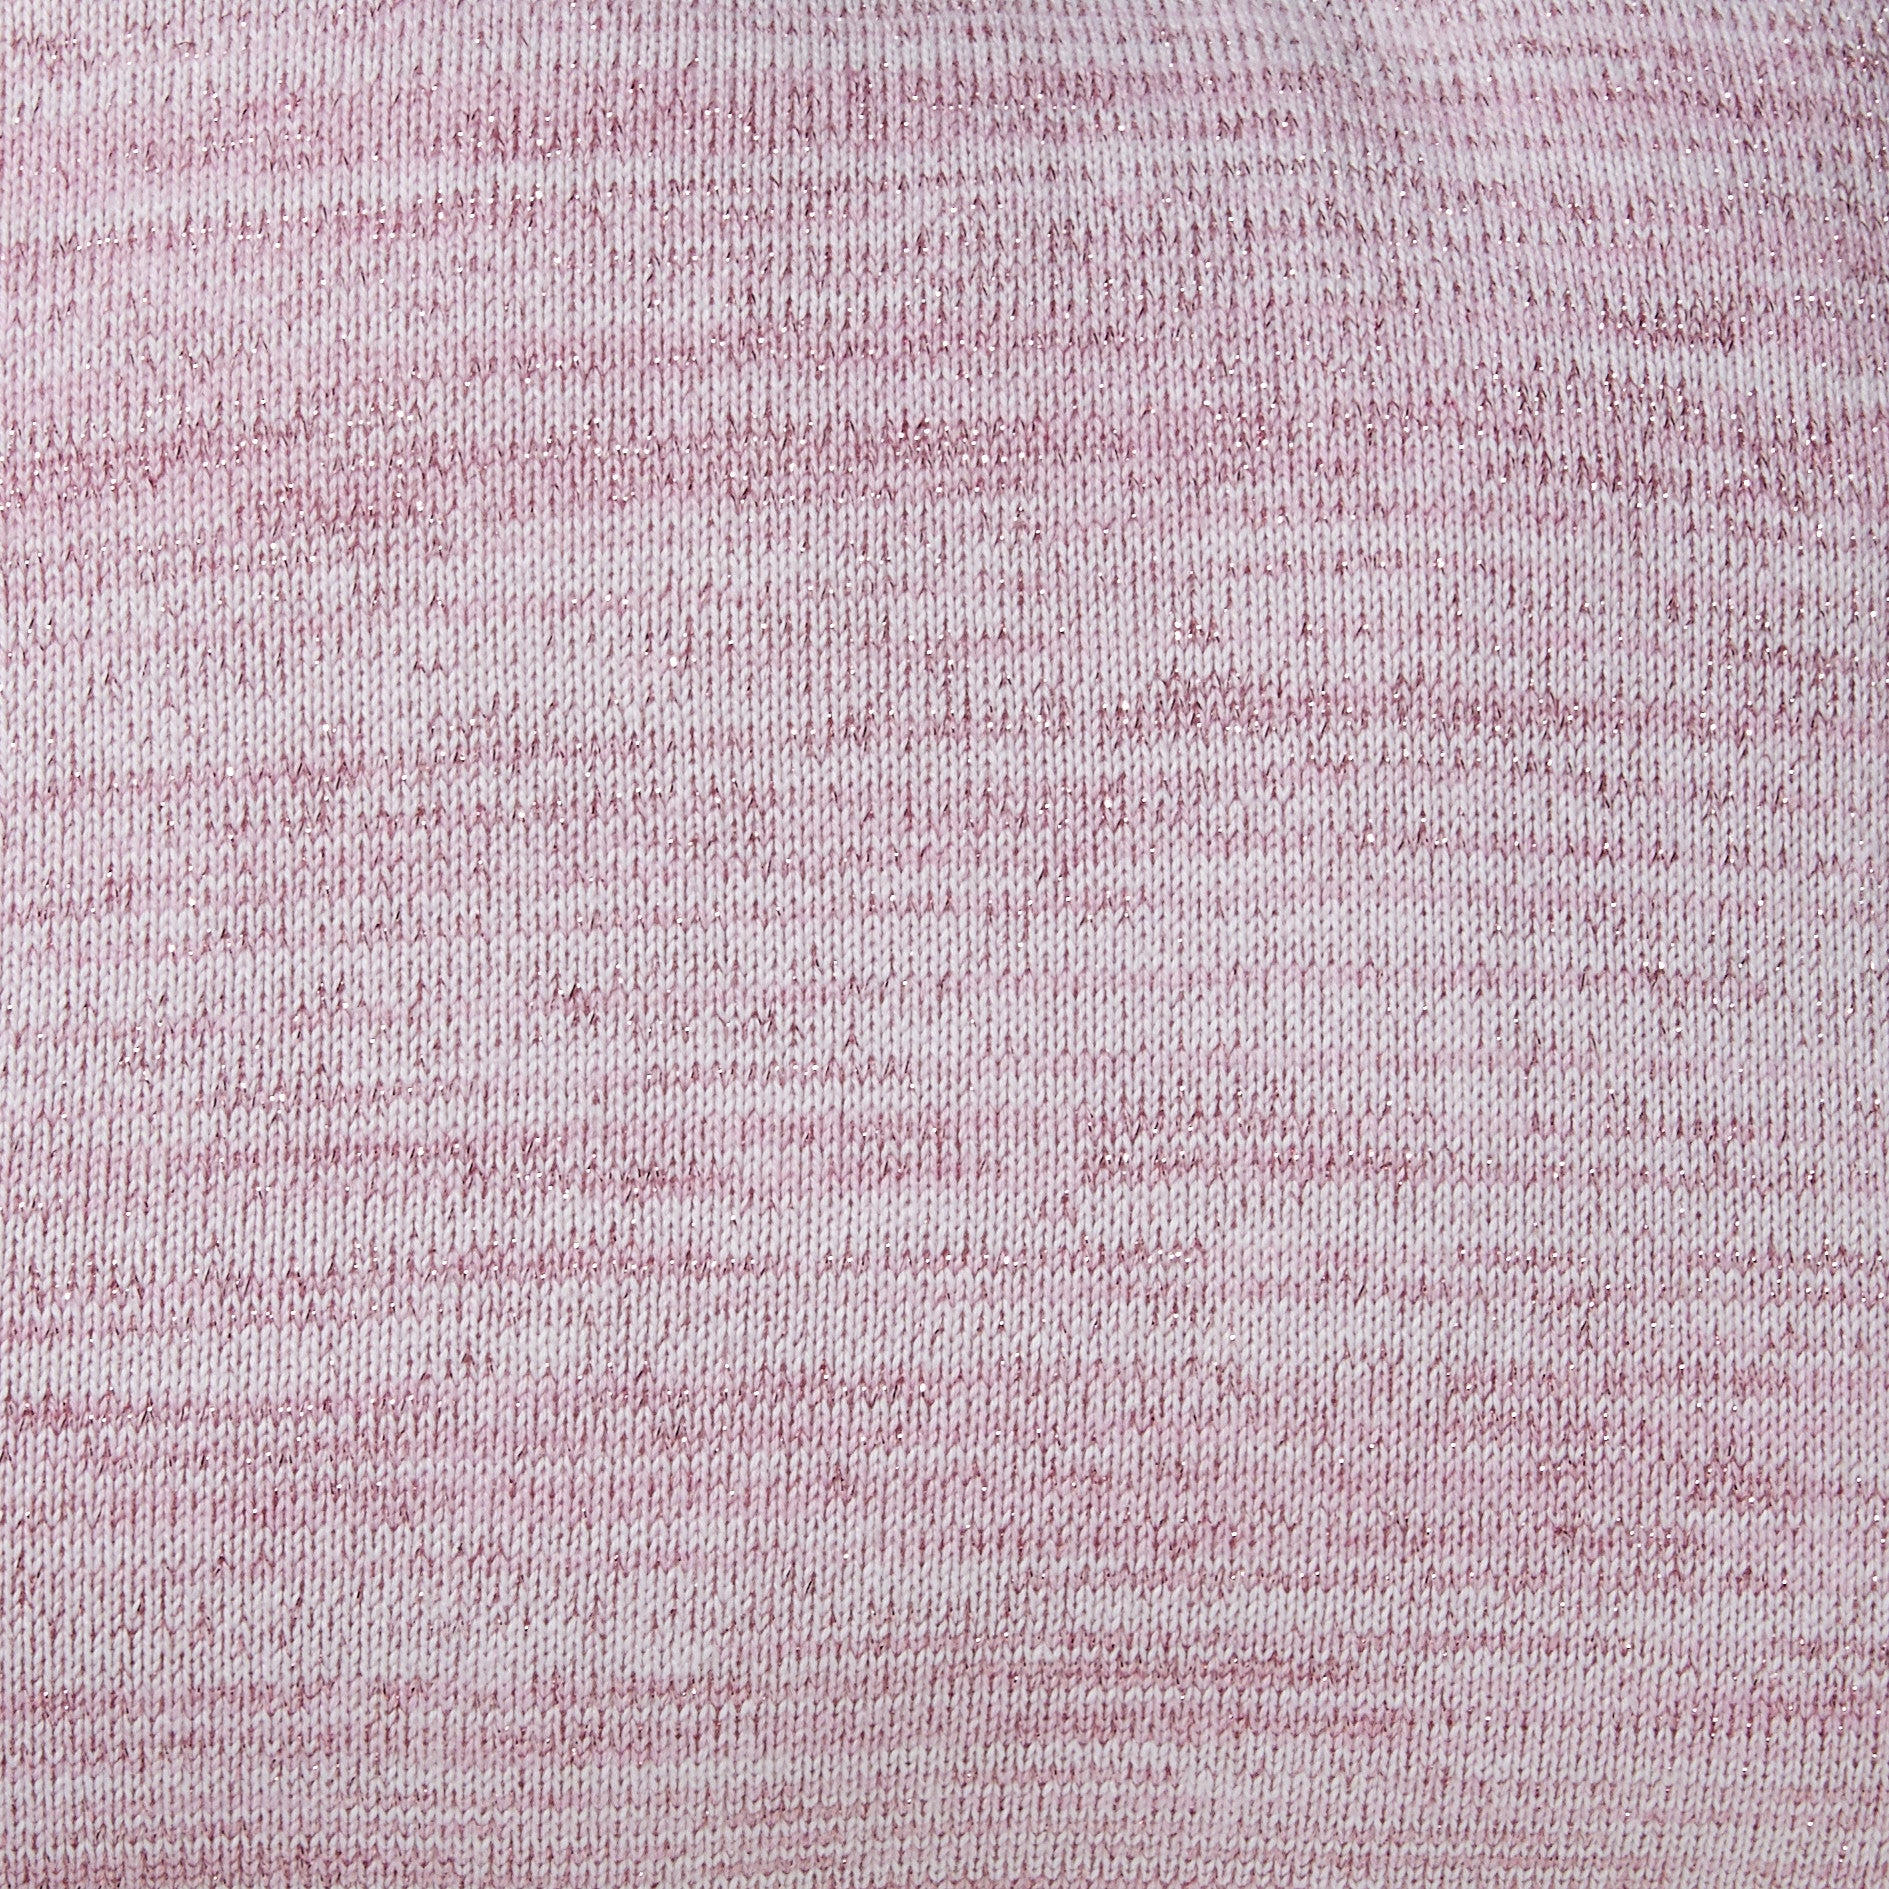 Cloud cushion, pink